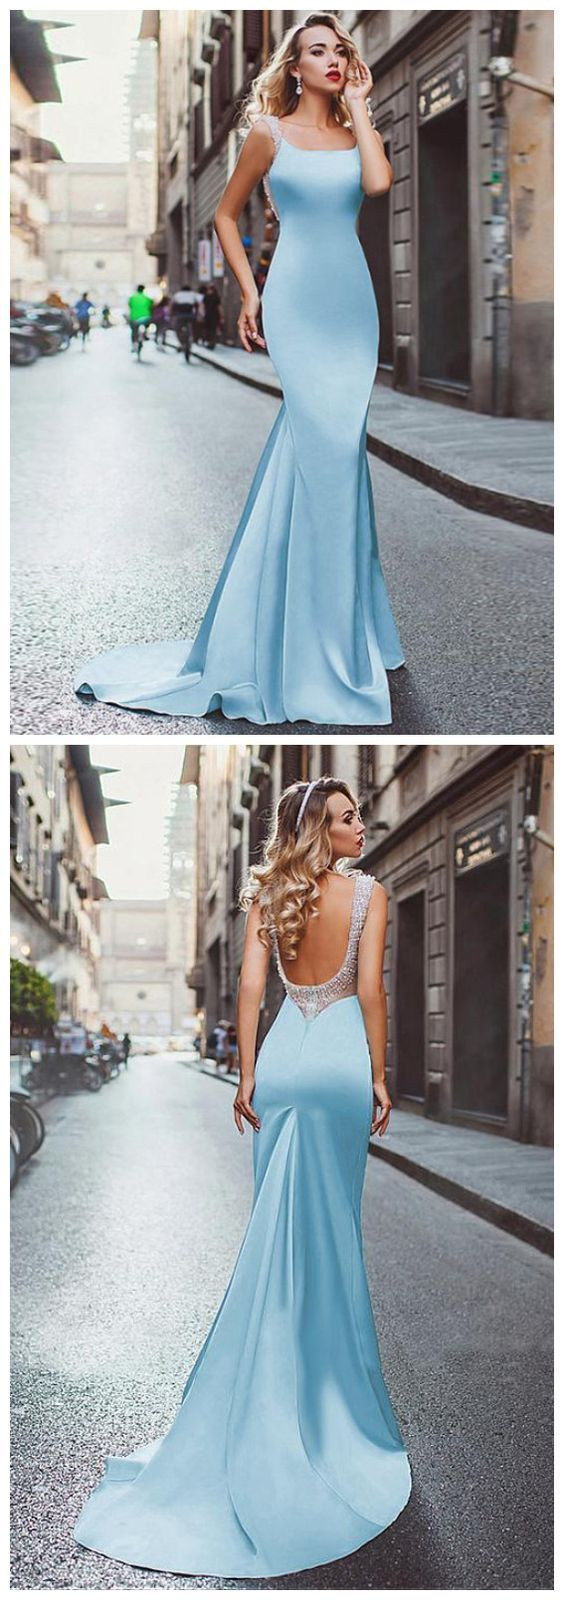 86 best Beautiful prom dress! images on Pinterest